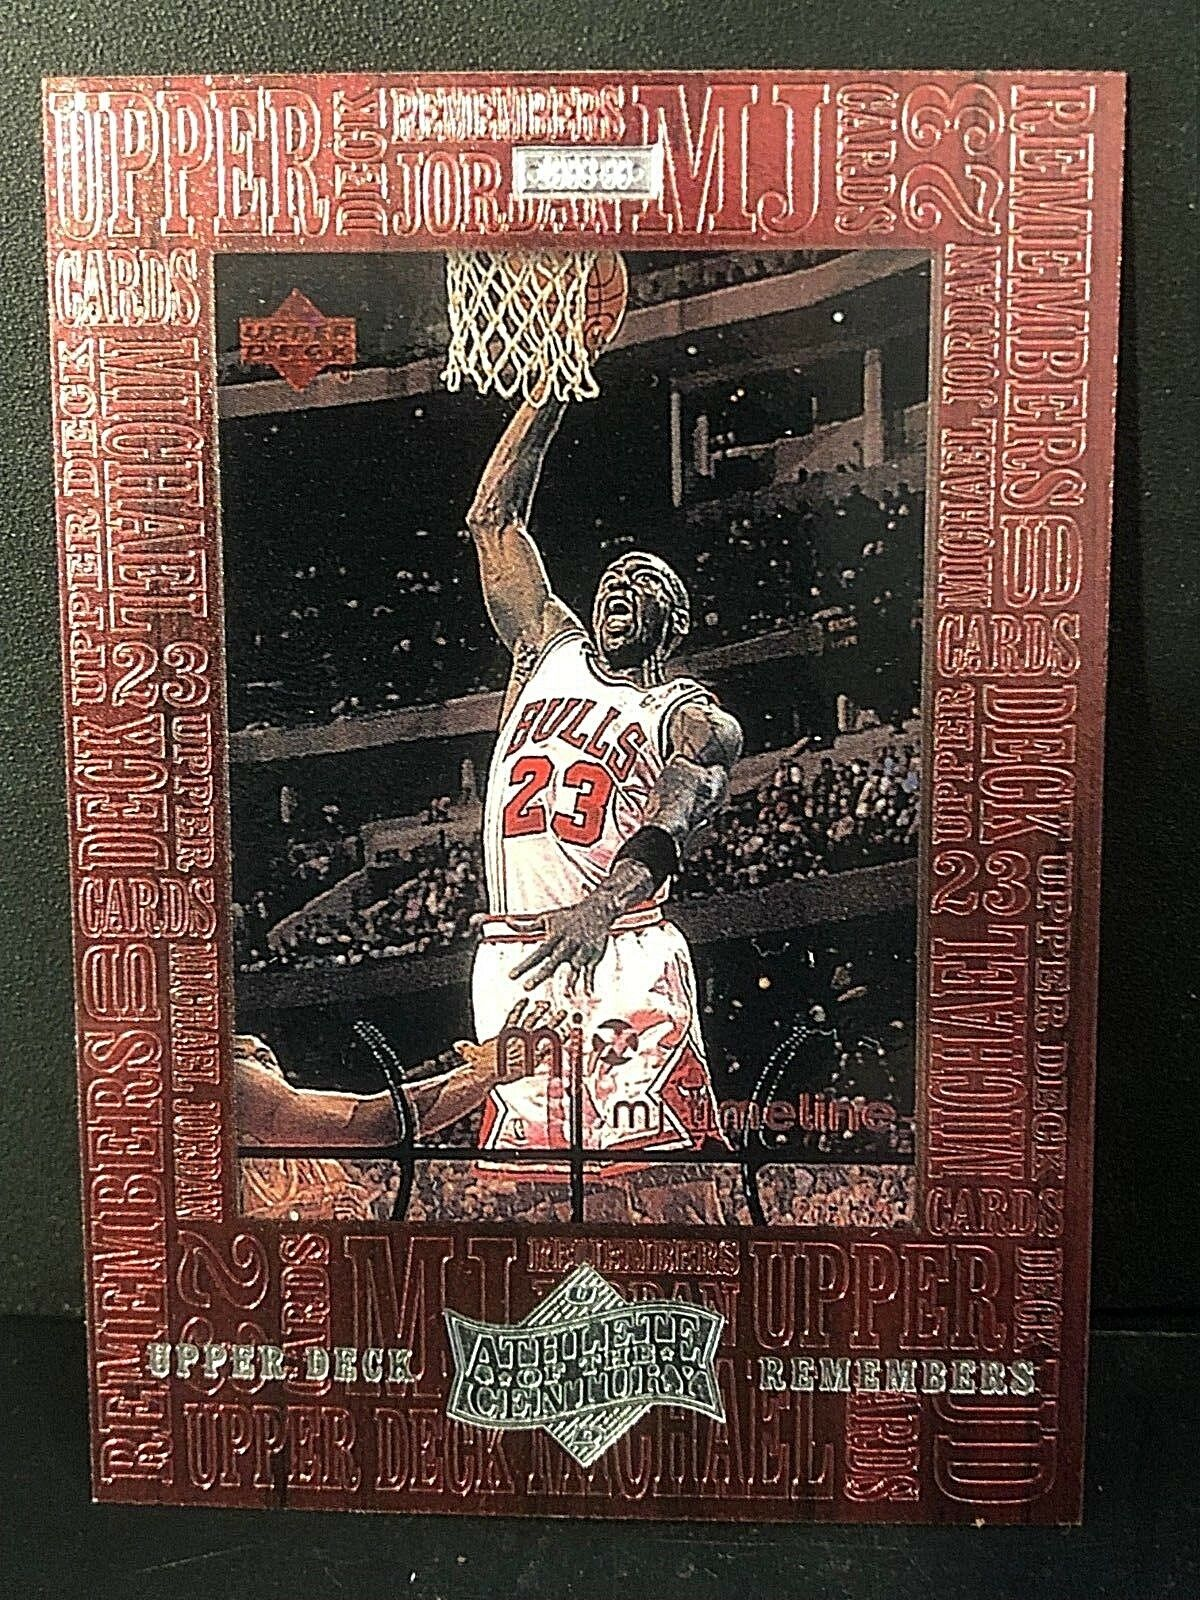 MICHAEL JORDAN 1999 Upper Deck ATHLETE OF THE CENTURY UD Remembers #UD7 BULLS